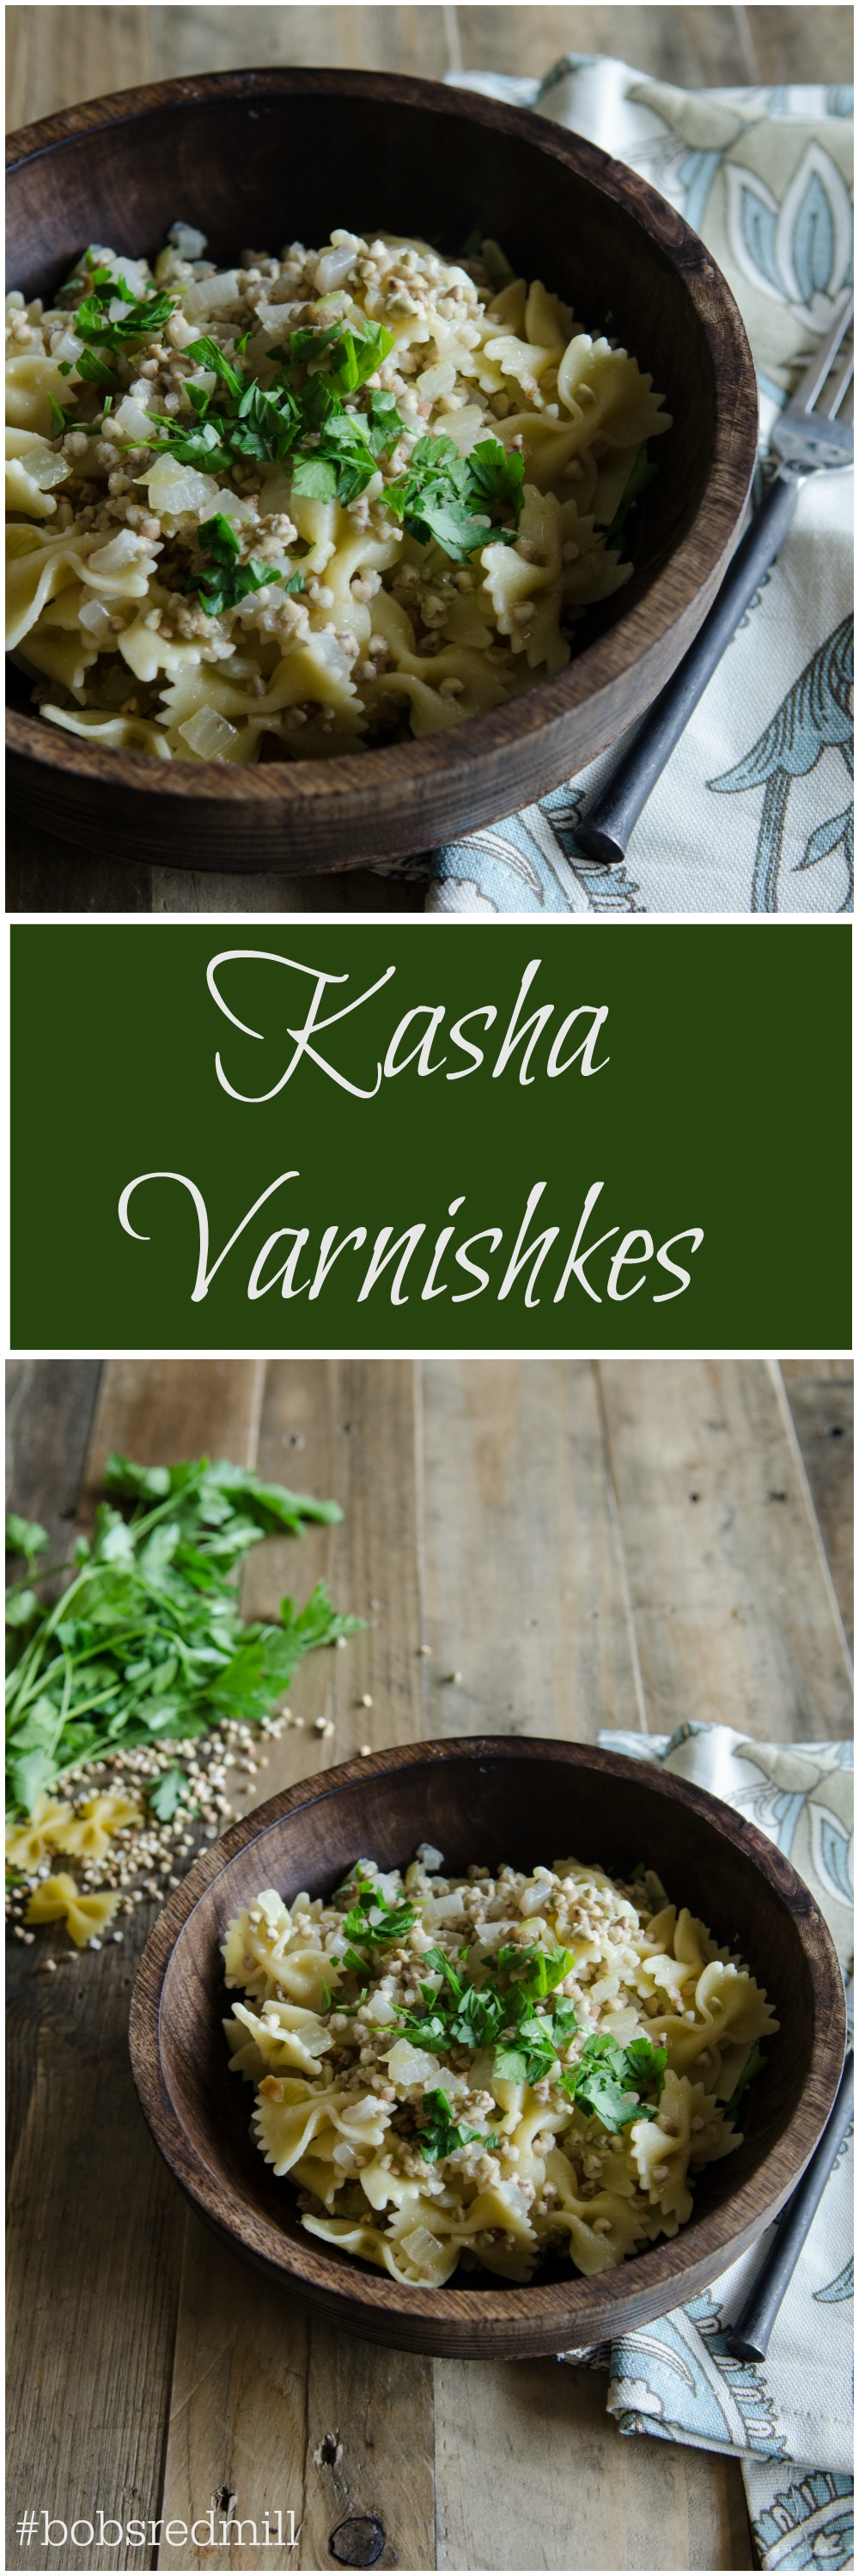 Kasha Varnishkes- the traditional Ashkenazi Jewish dish made using buckwheat and farfalle pasta. Quick, easy and satisfyingly simple. // Bob's Red Mill